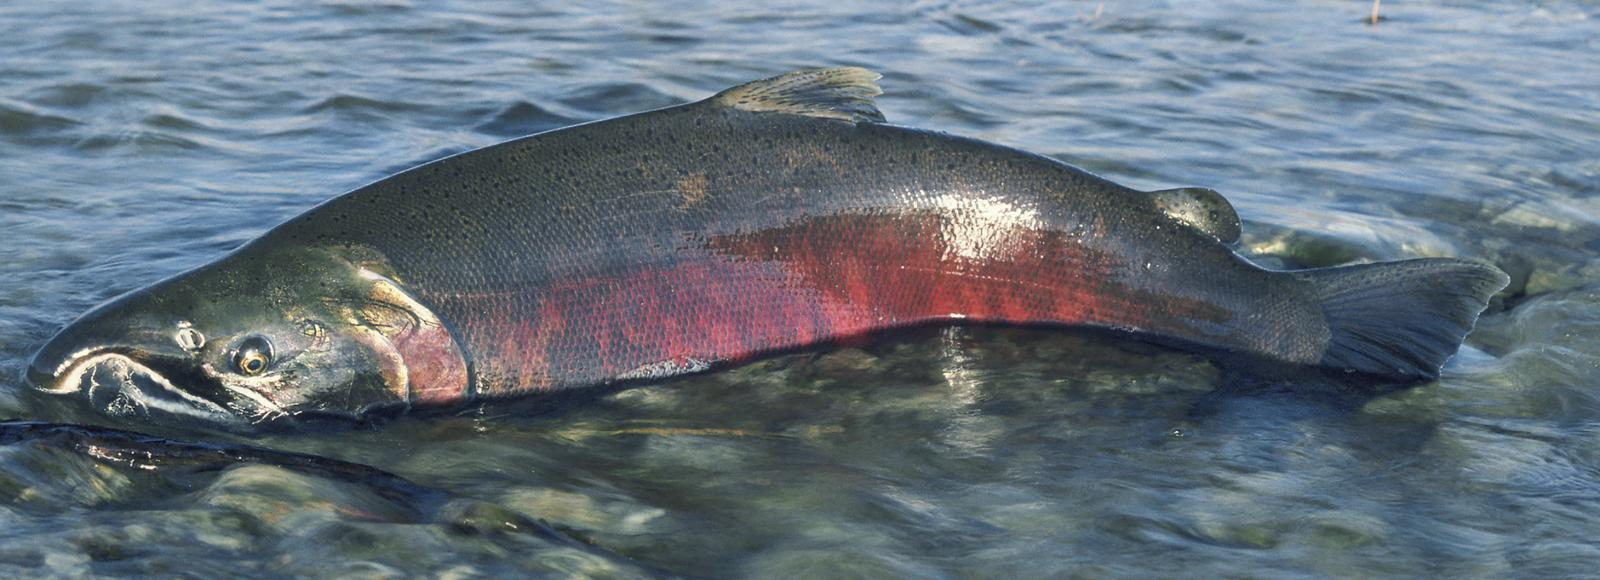 A Chinook salmon only half submerged in a shallow stream. The lower parts of the salmon are very red.